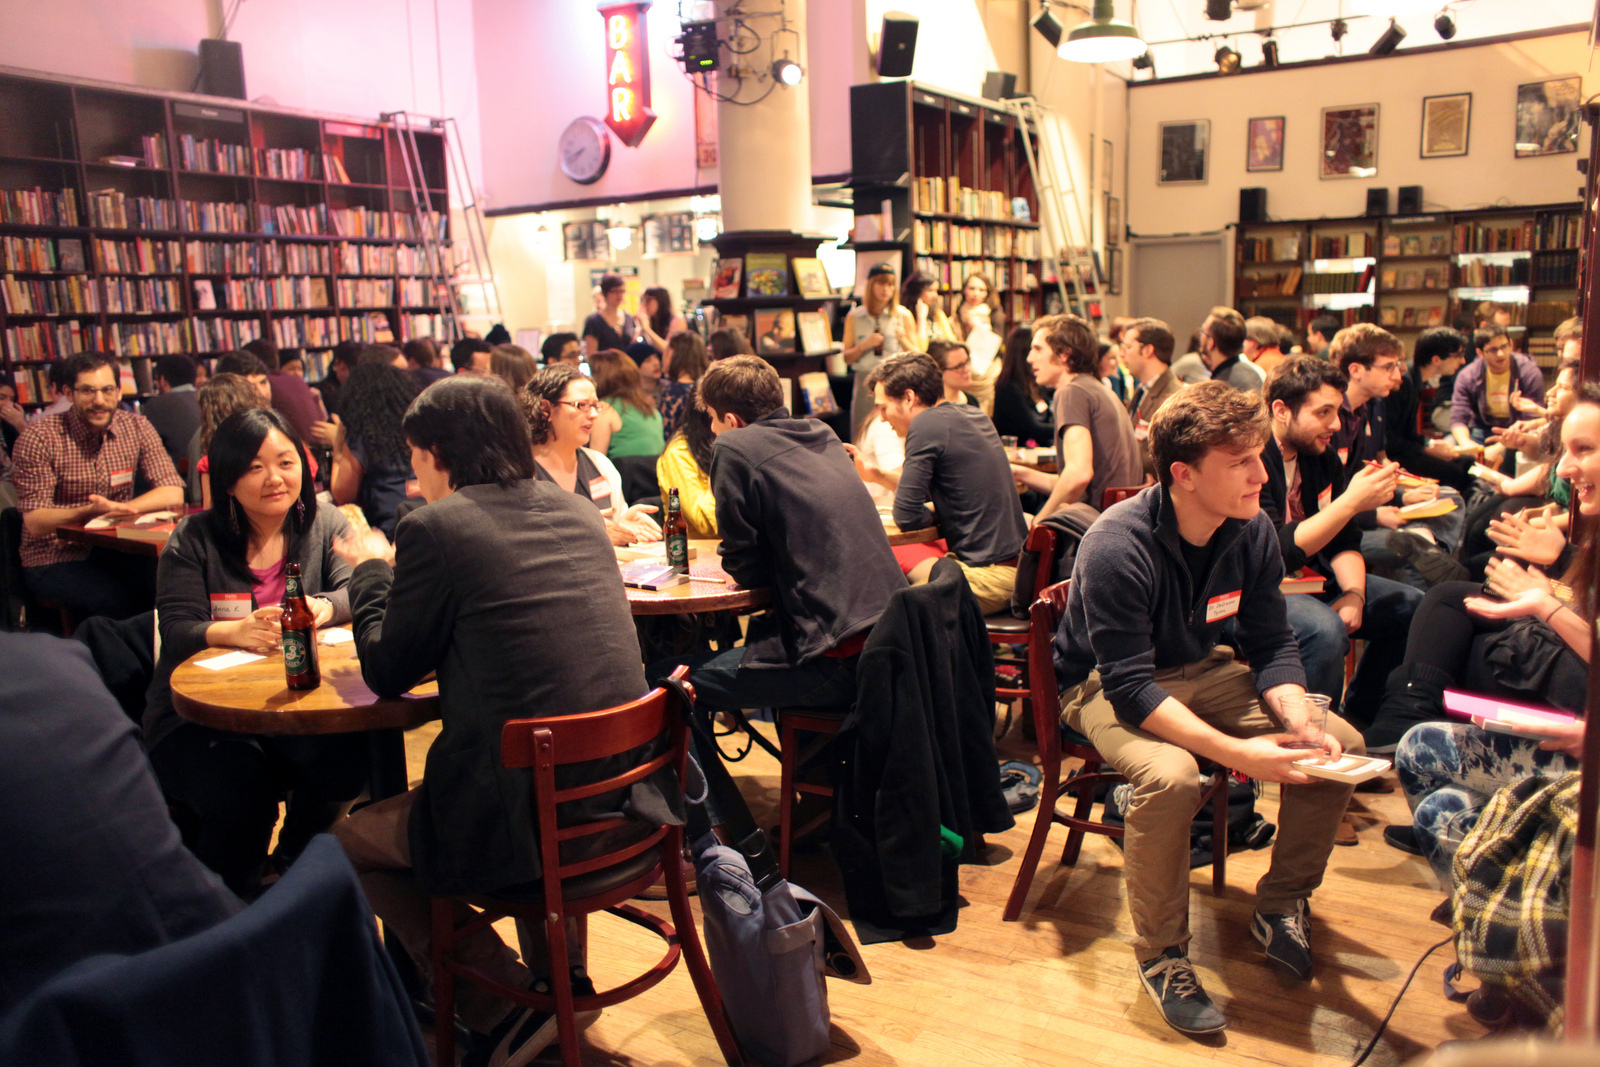 Japanese speed dating nyc